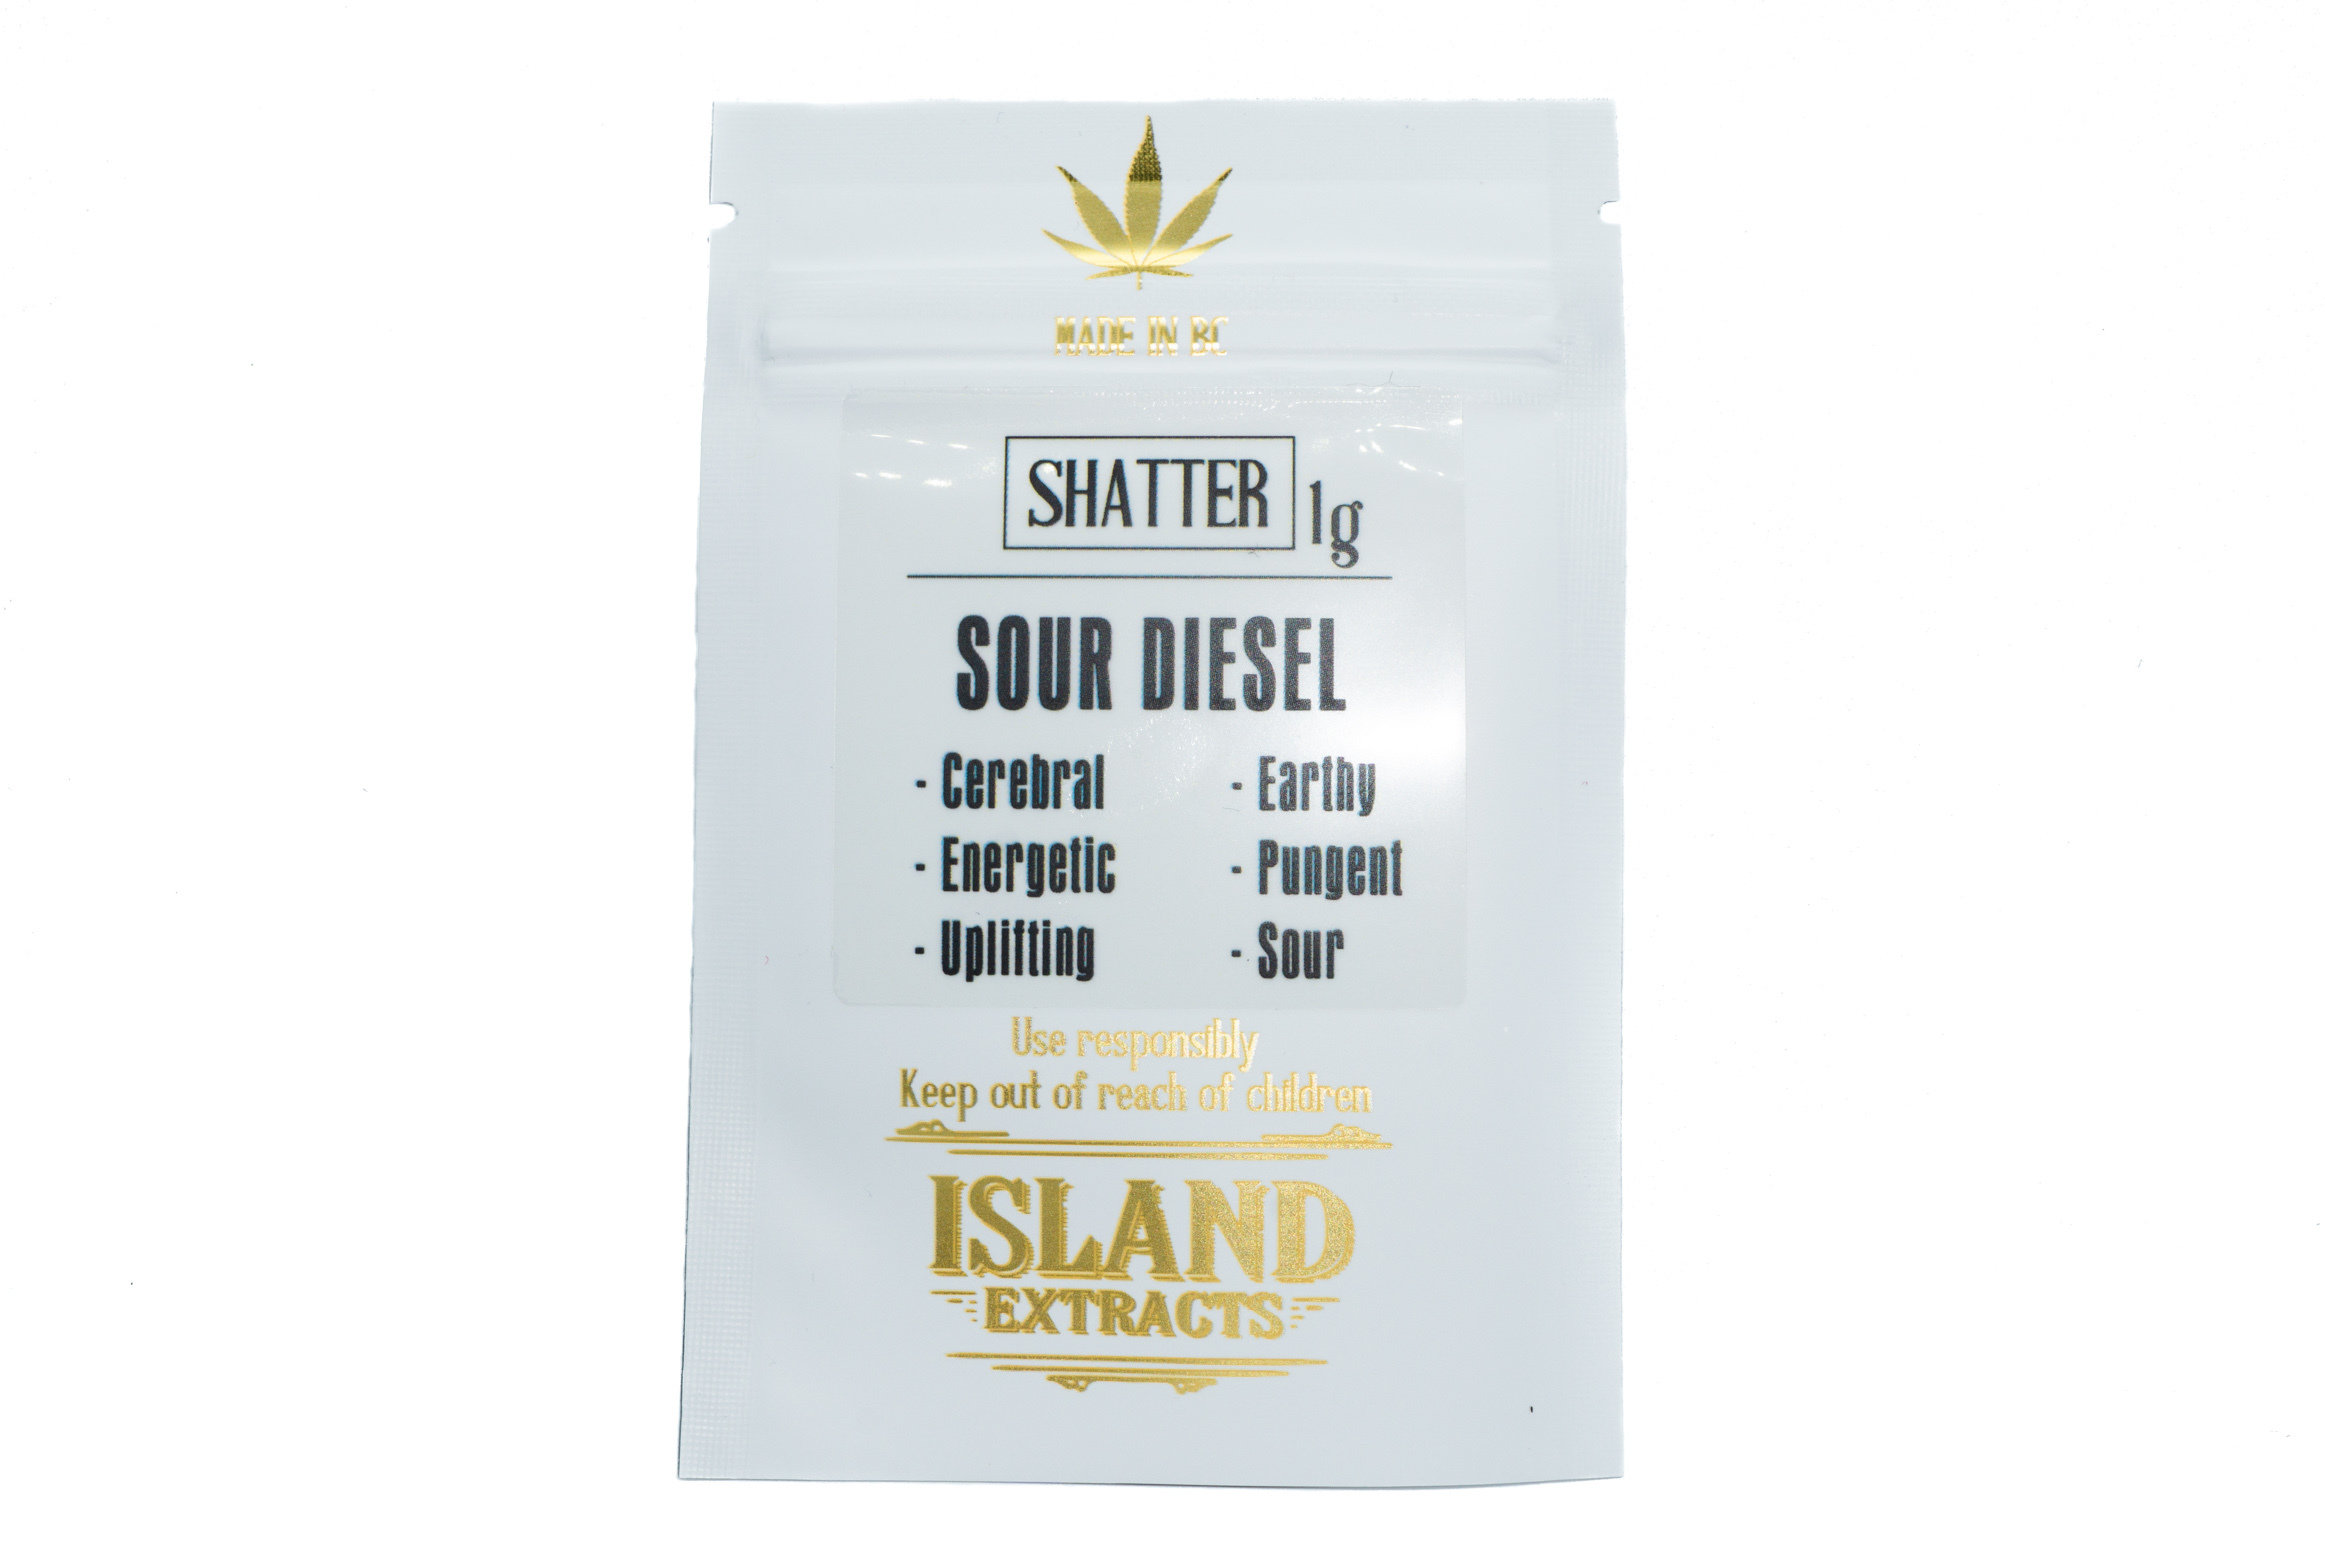 Sour Diesel Shatter (1g) by Island Extracts 01169